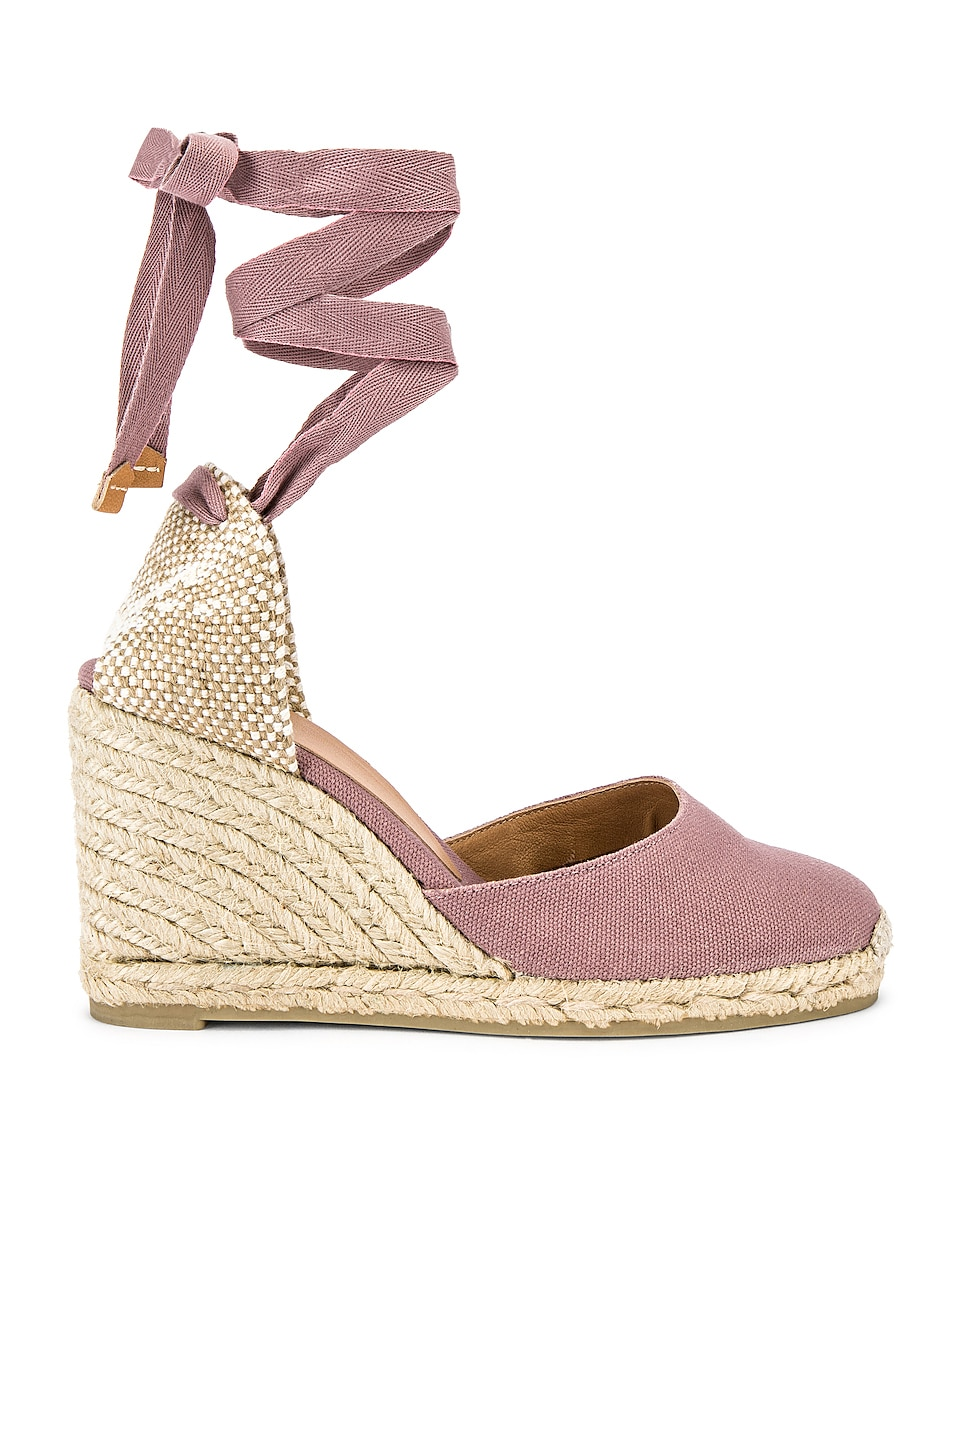 Castaner Carina Wedge in Malva